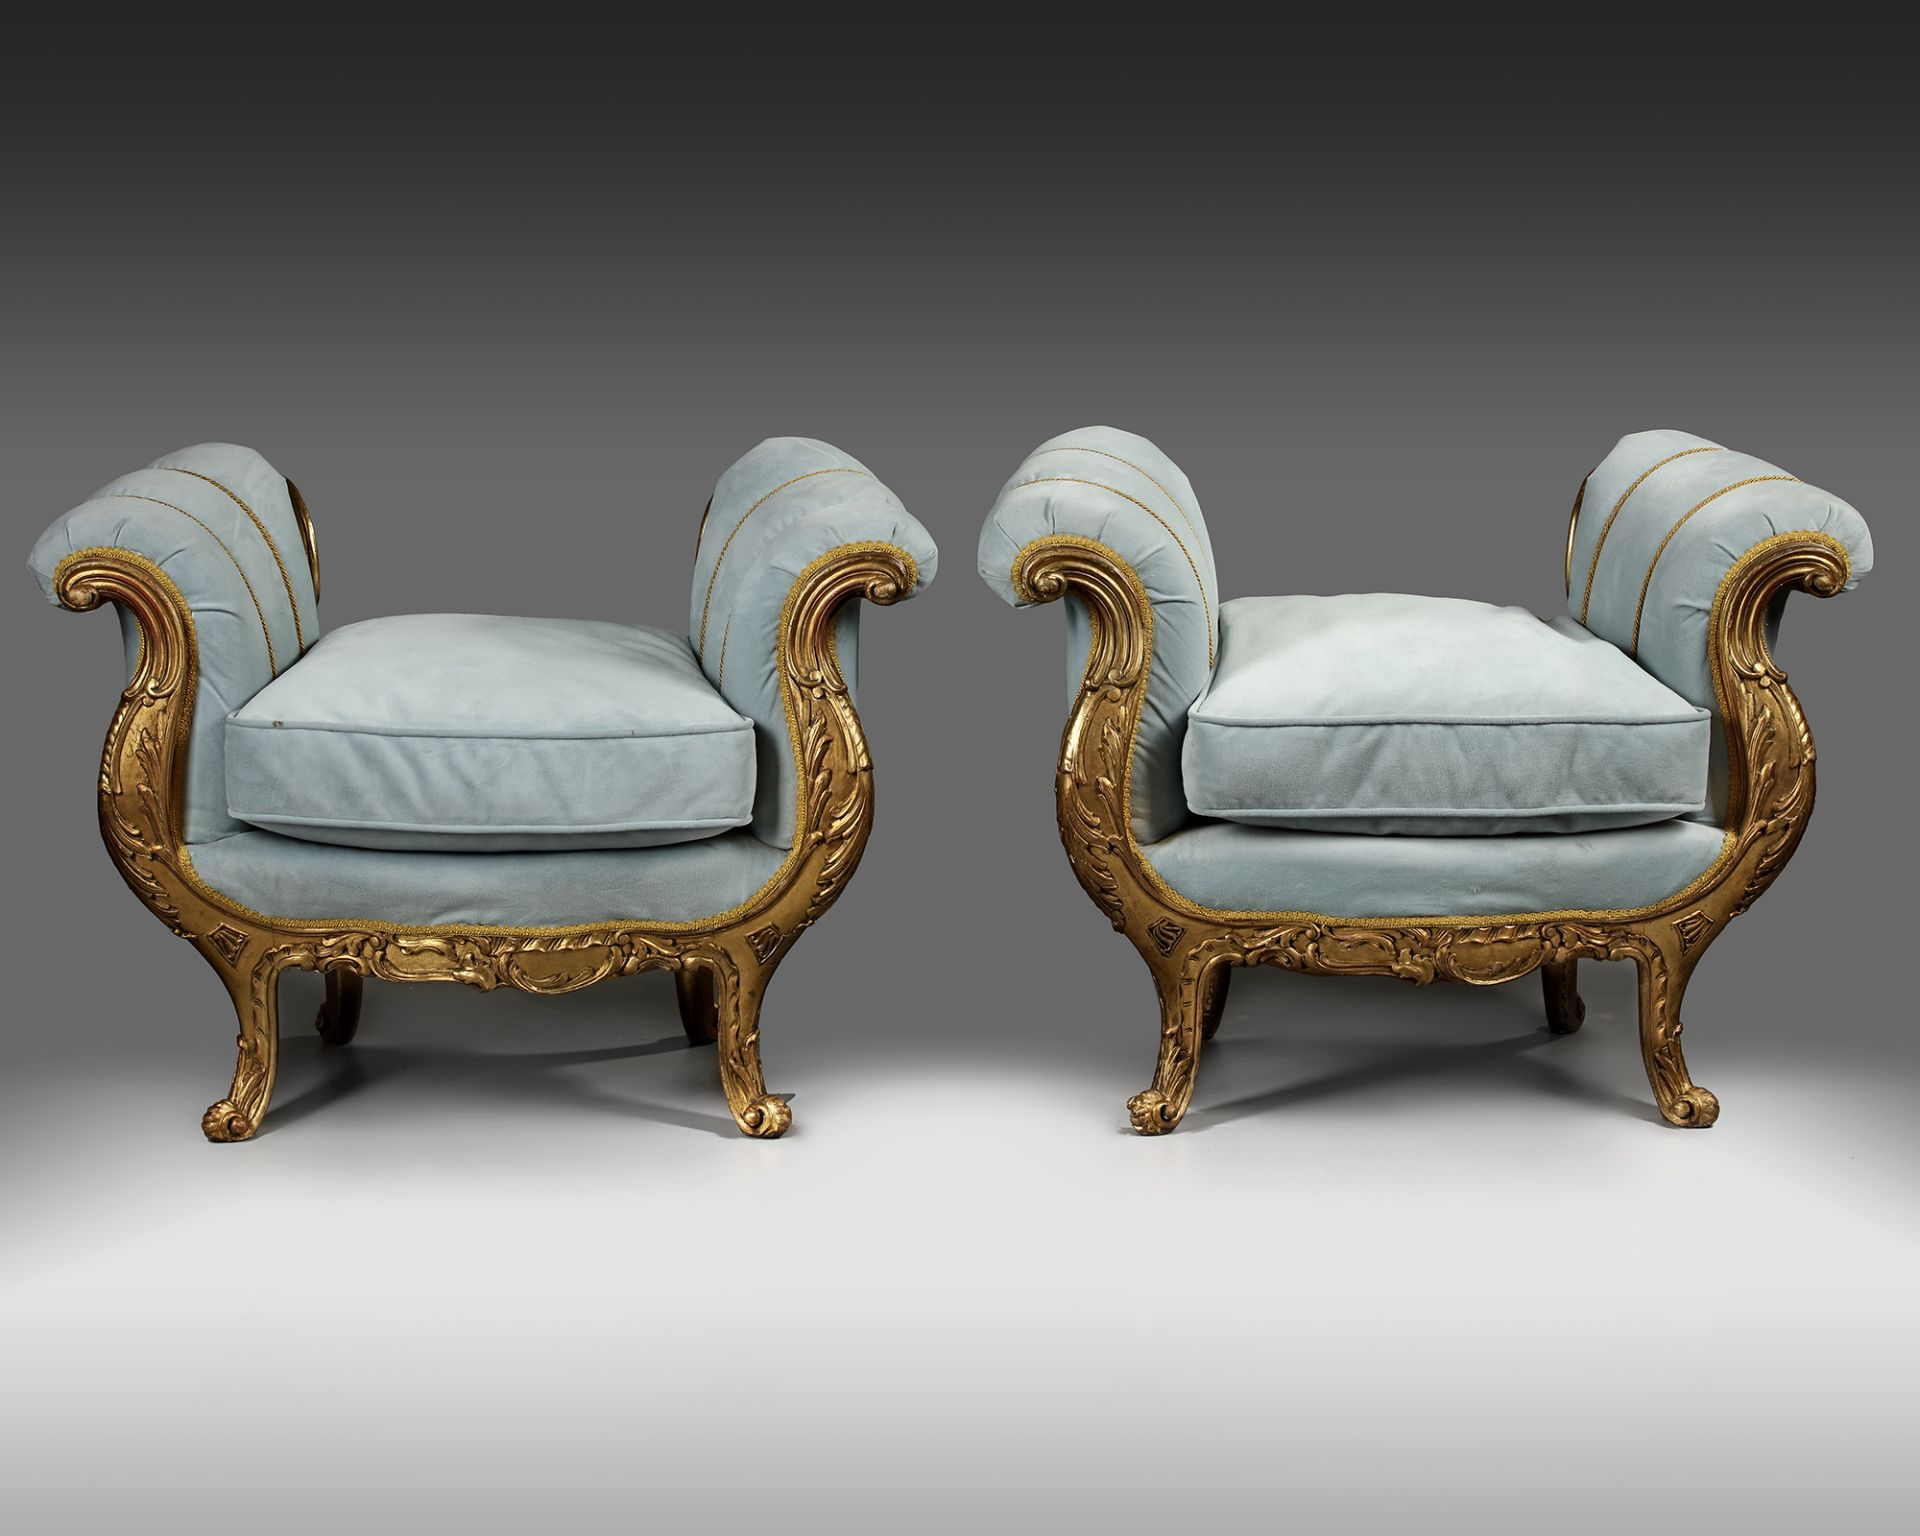 A PAIR OF FRENCH LOUIS XV STYLE GILT WOOD POUFS, LATE 19TH CENTURY - Image 3 of 5